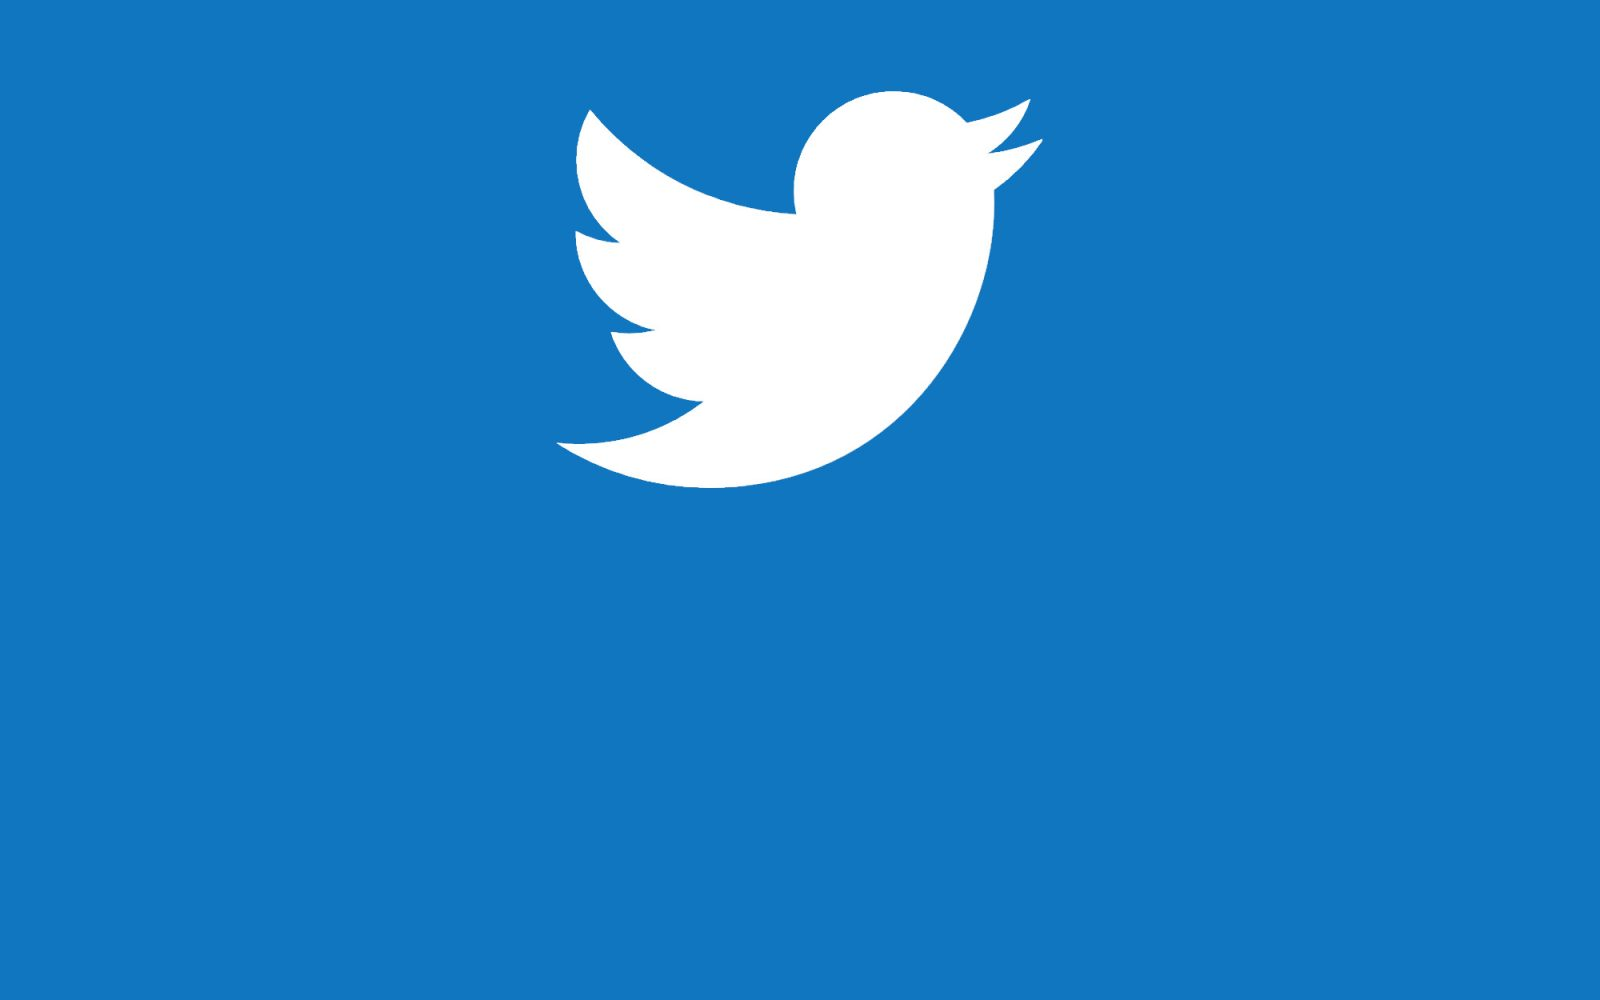 Twitter bloopers - Twitter icon